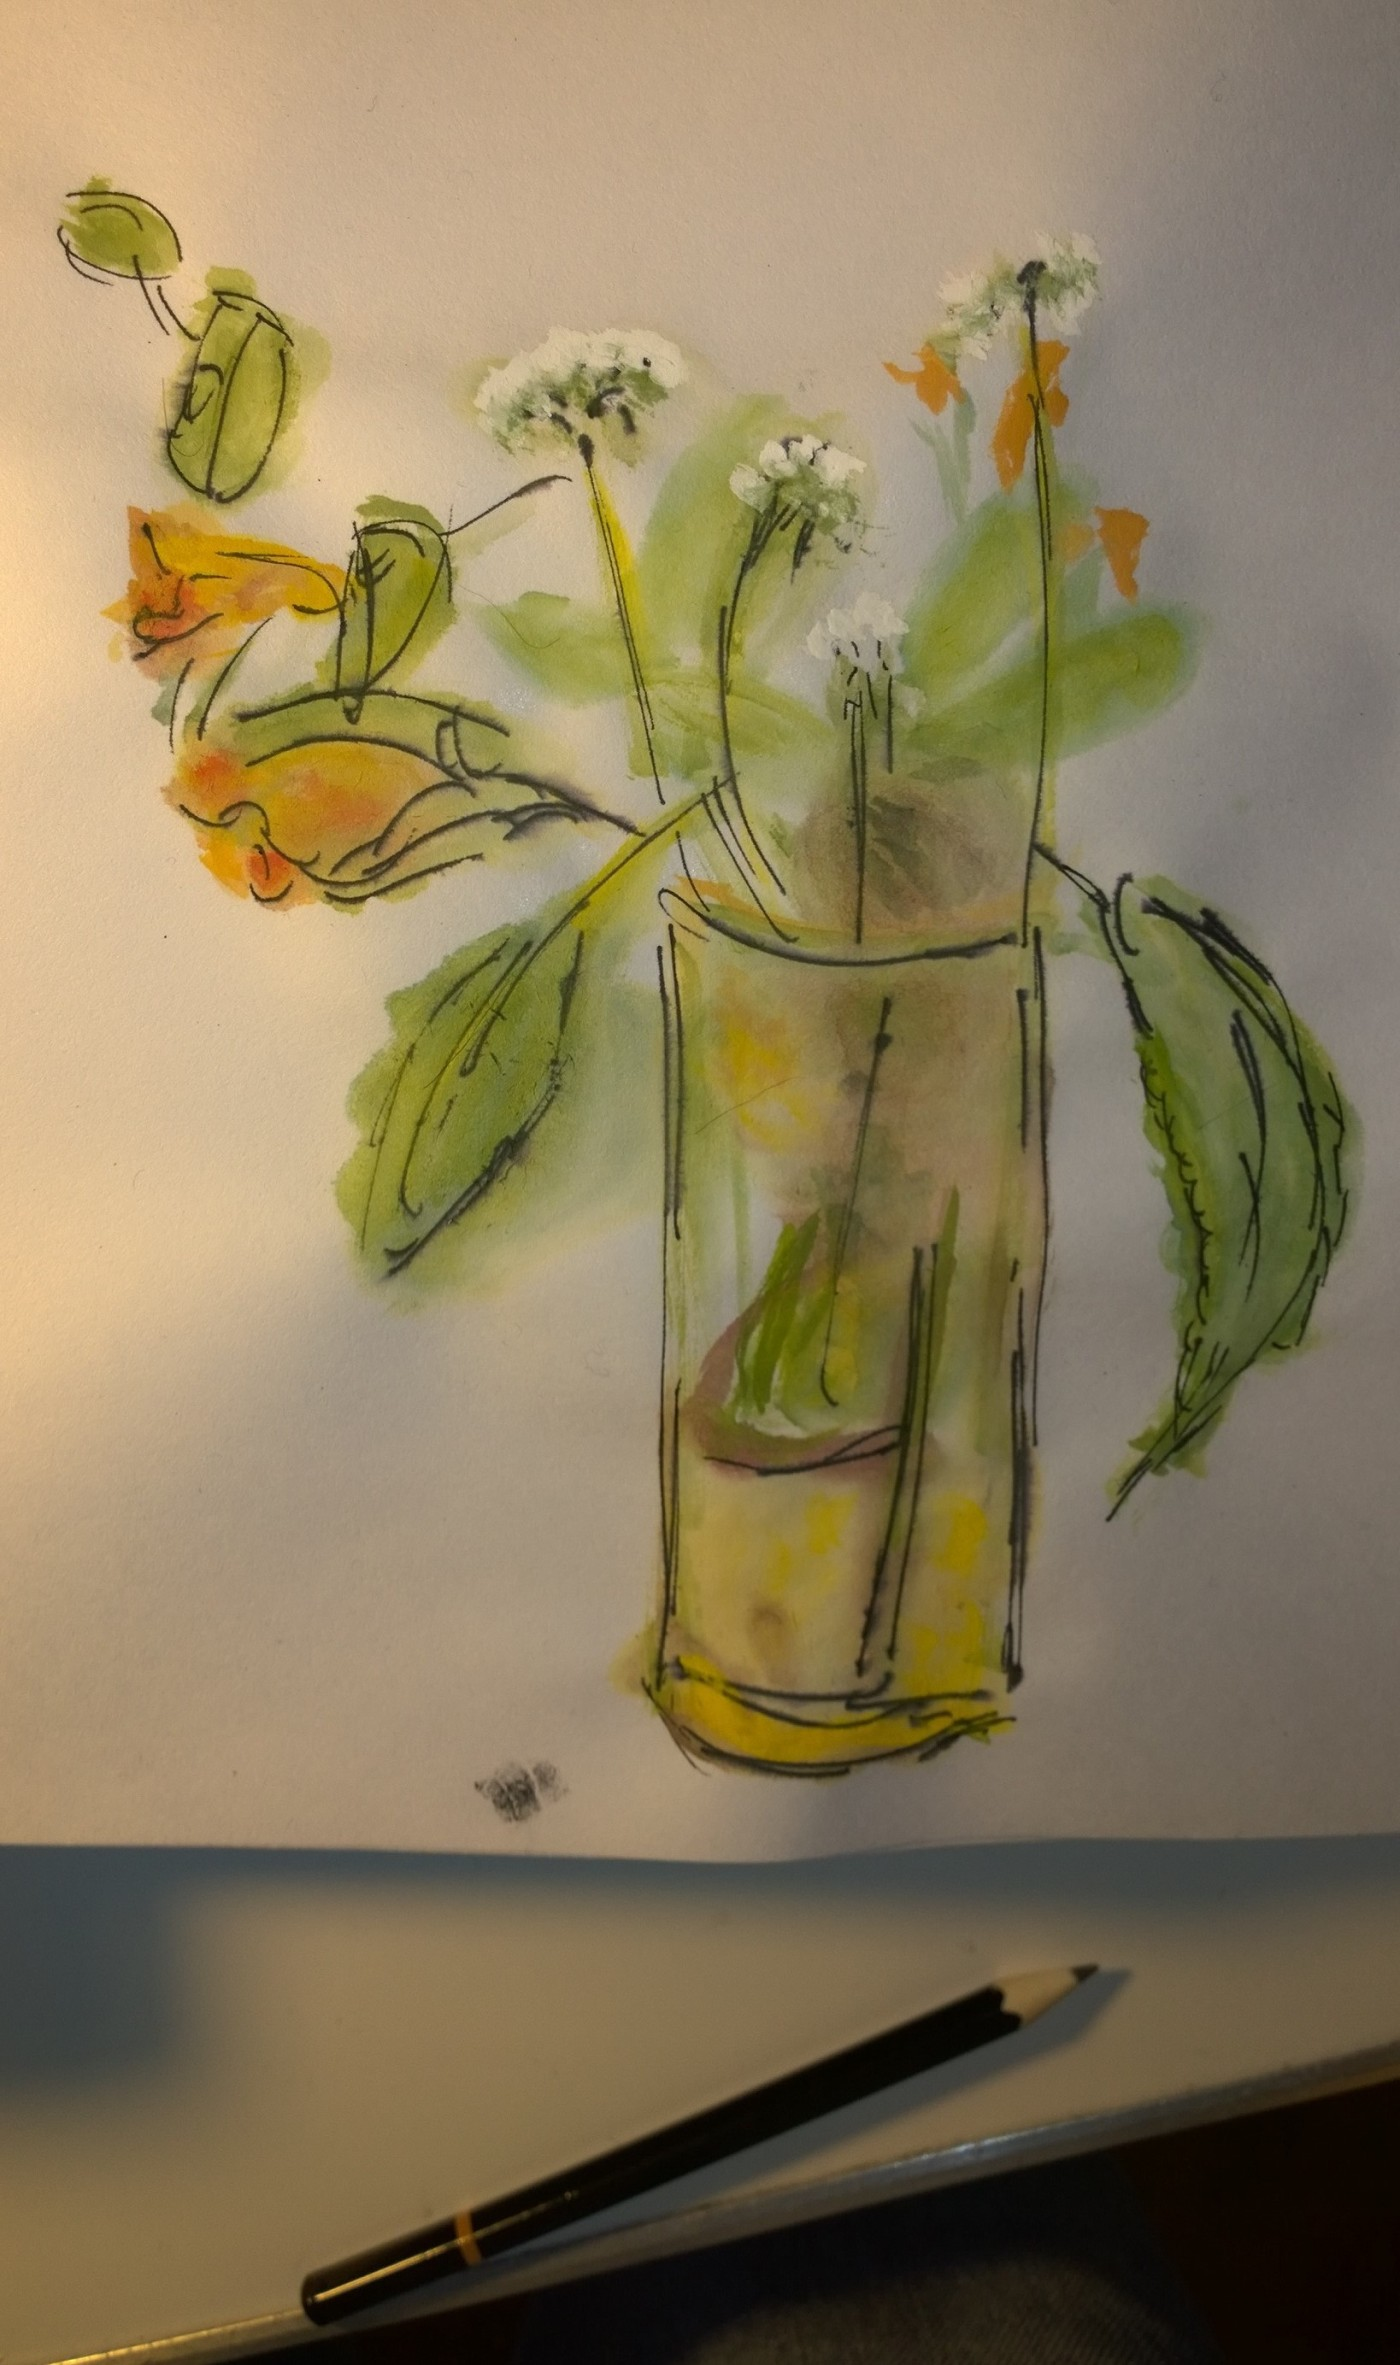 Flowers in glass, learning from the Chinese, painting by William Eaton, Byrdcliffe (photo with pencil)